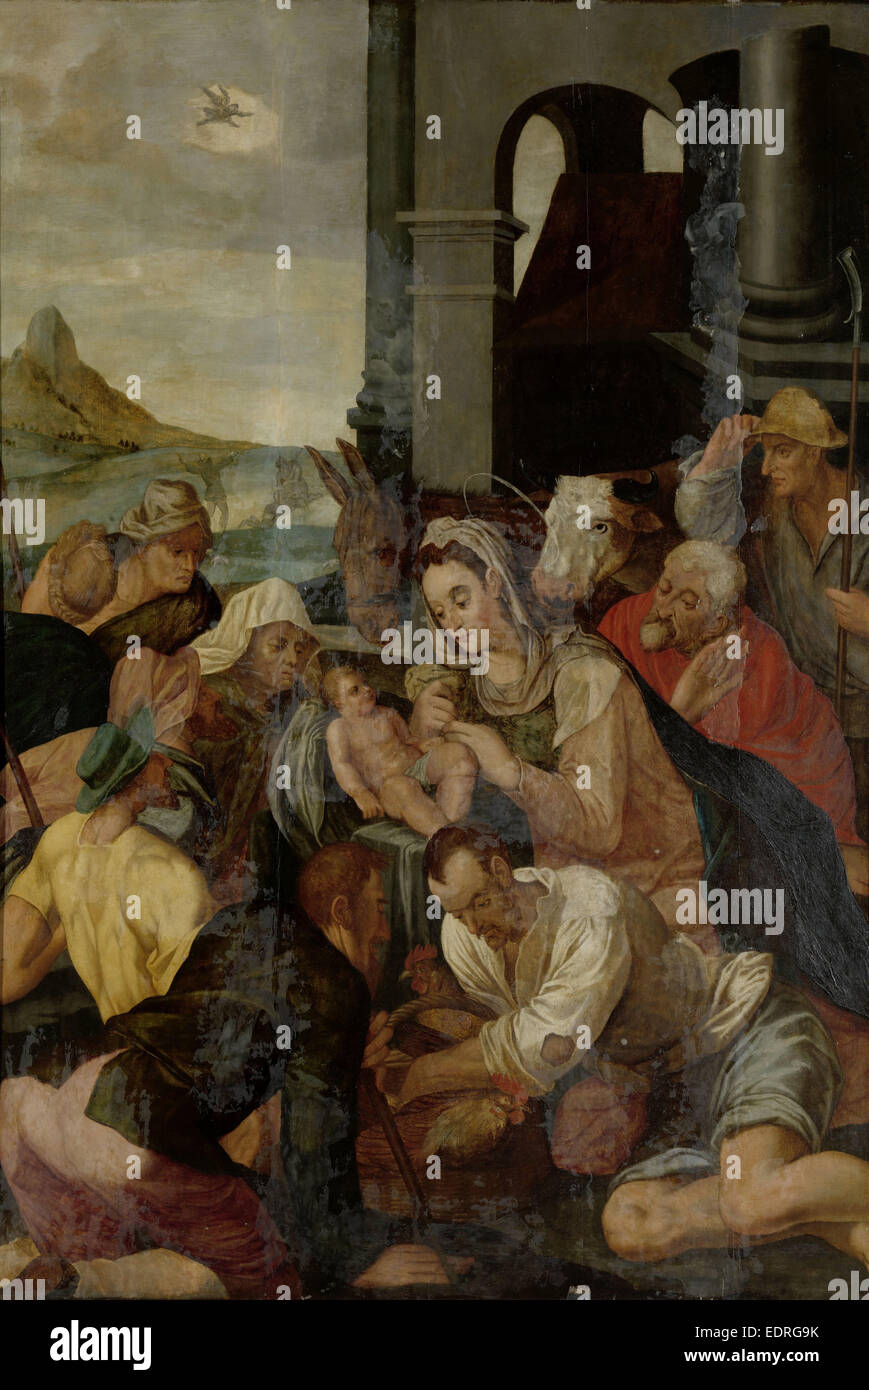 Adoration of the Shepherds, Anonymous, 1550 - 1599 - Stock Image